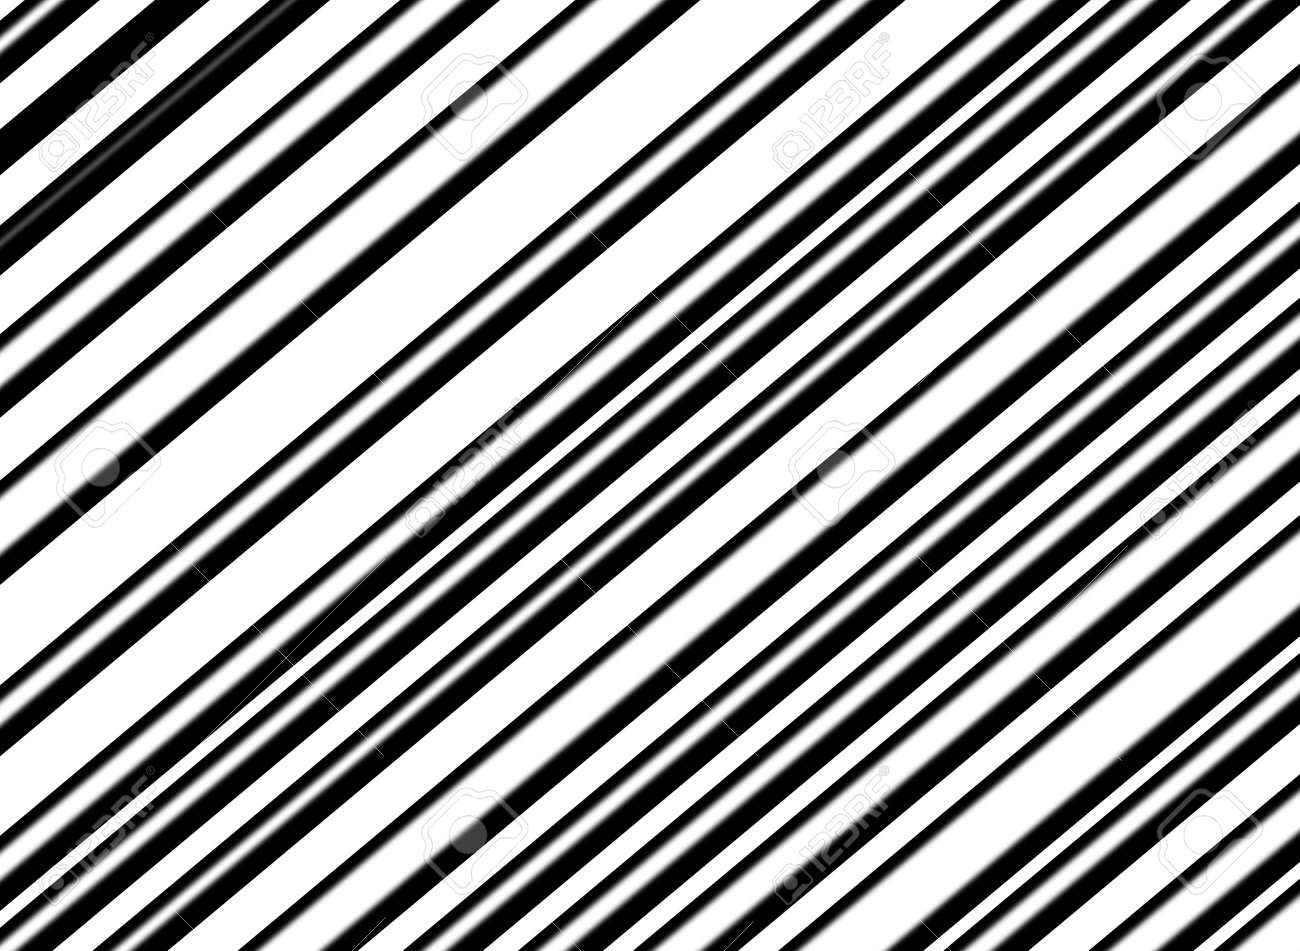 Simple black and white abstract line background stock photo 7495652